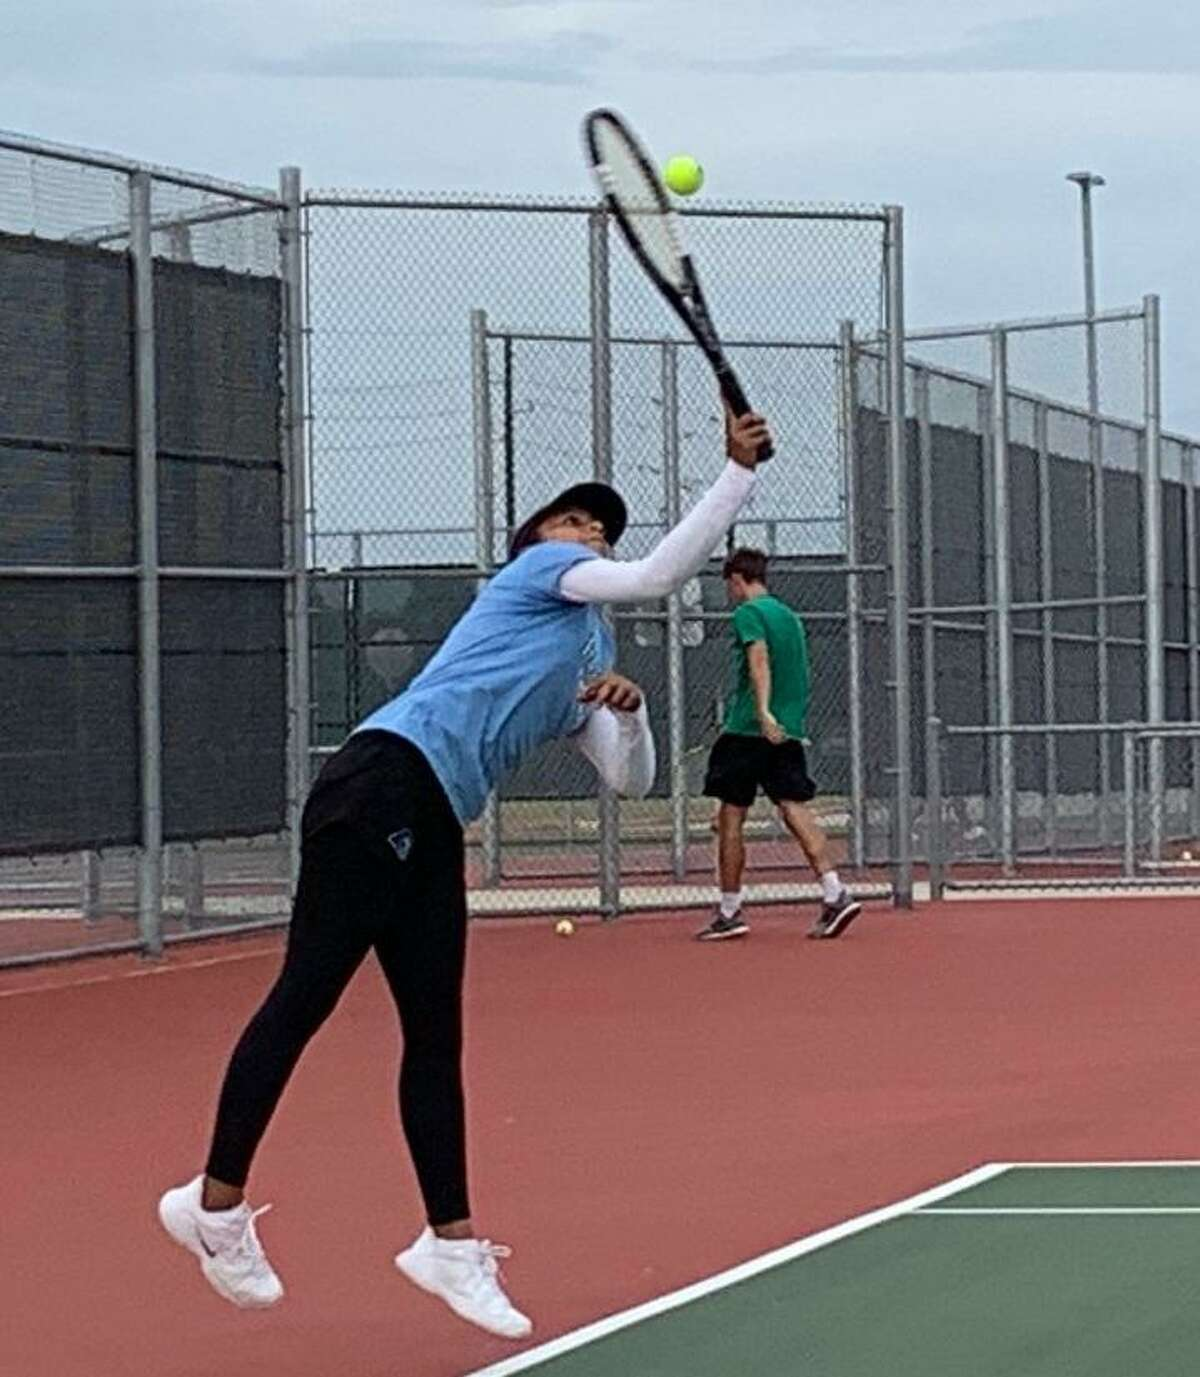 Paetow's Crystal Marcia serves during a singles match against Brenham in a District 19-5A team tennis dual Sept. 8 at Paetow High School. Marcia won her match 6-4, 6-2, contributing to a 17-2 victory for the Panthers.